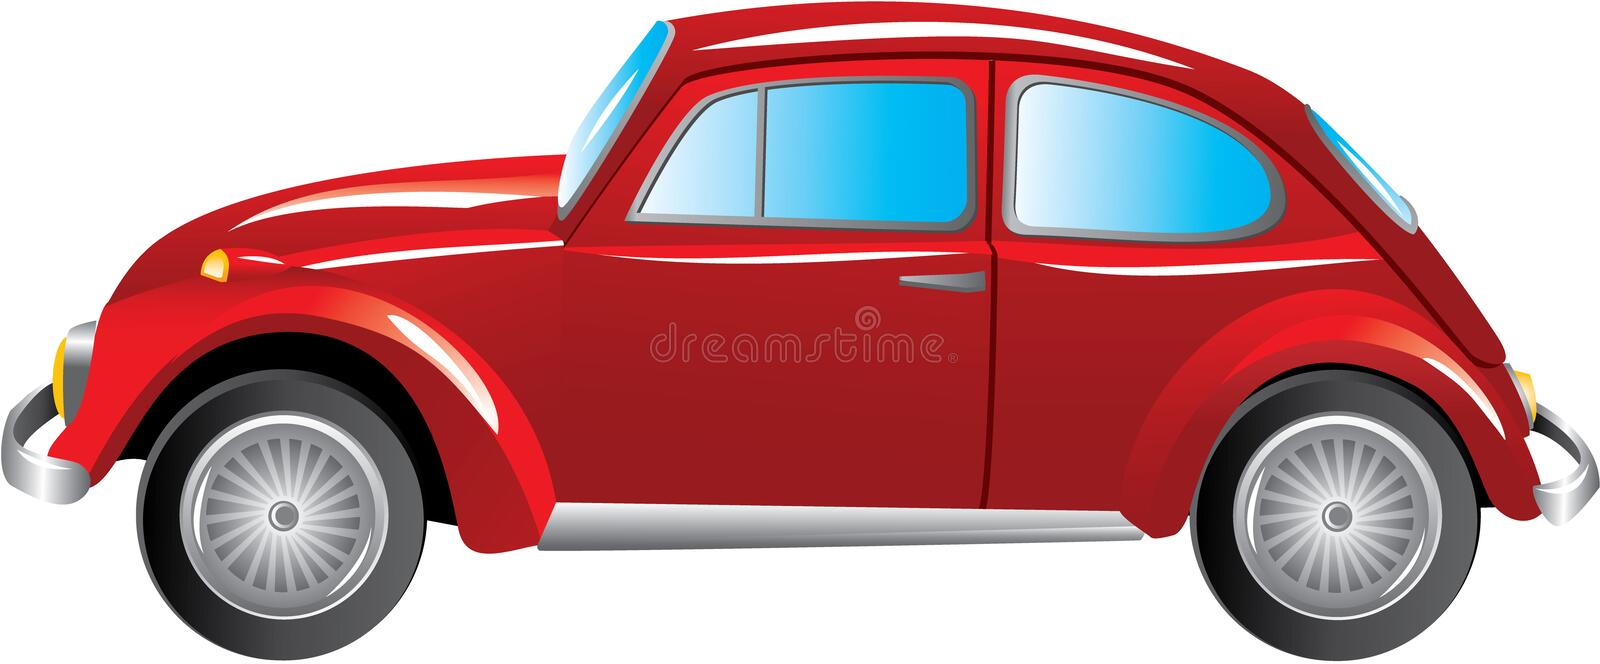 Red retro car isolated on white background vector illustration